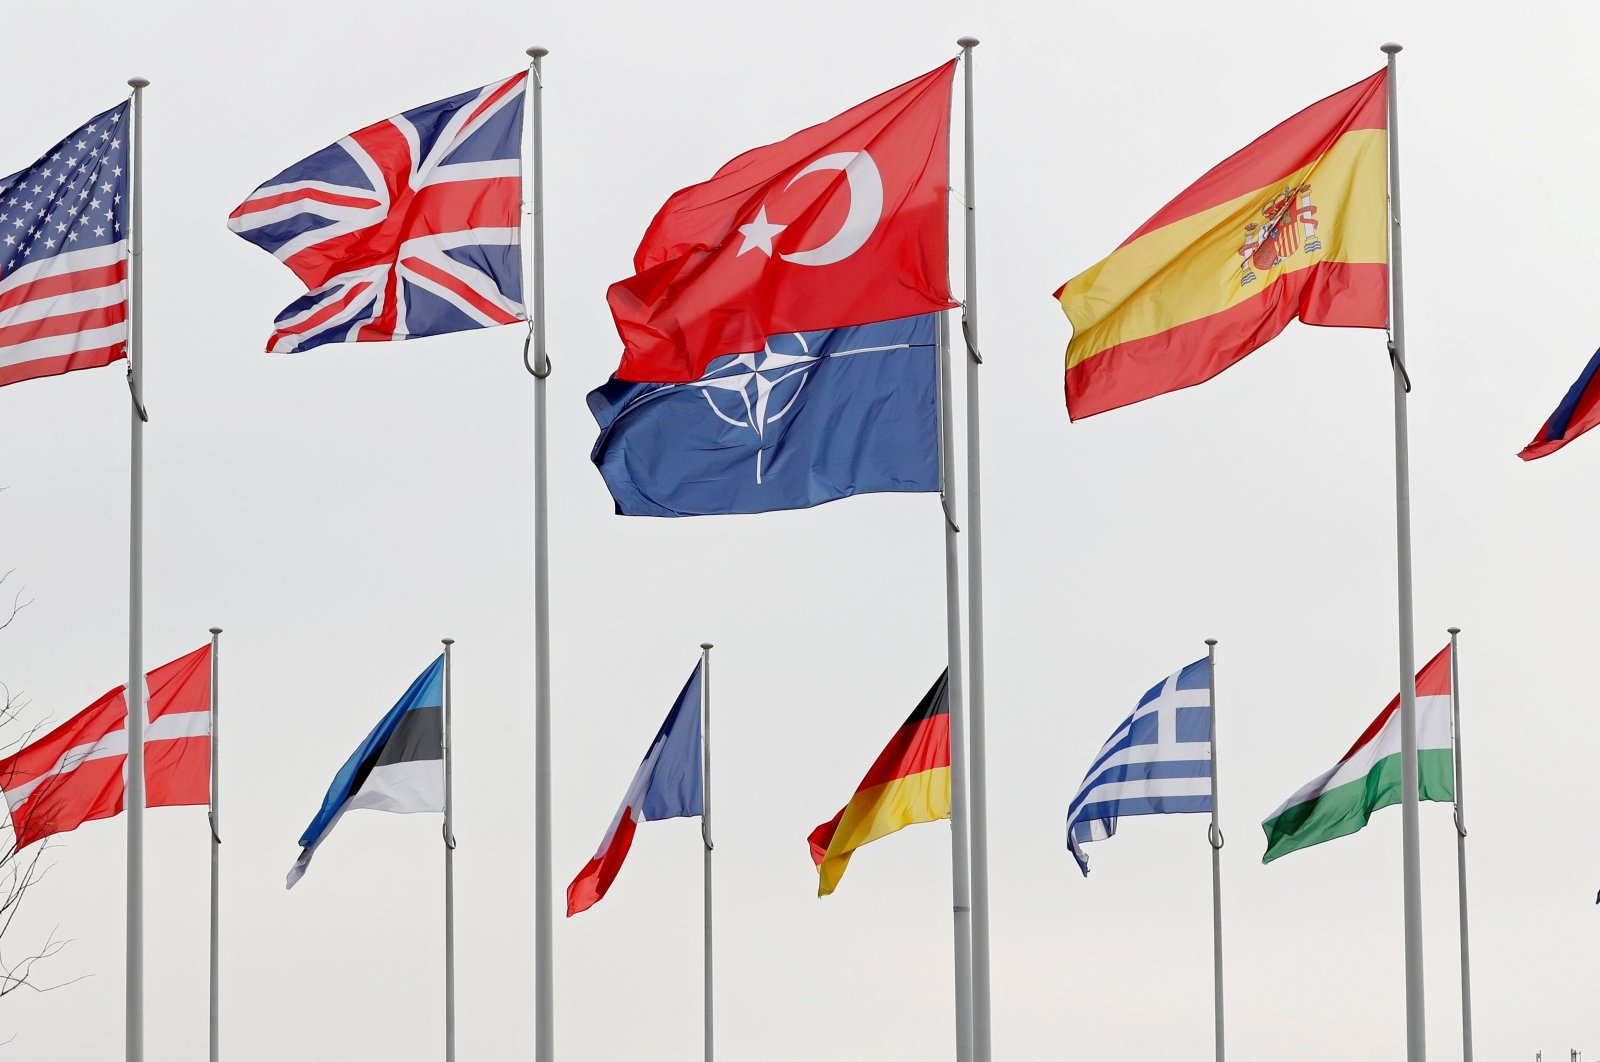 Flags of NATO member countries flutter at alliance headquarters in Brussels, Belgium, Feb. 28, 2020. (Reuters Photo)